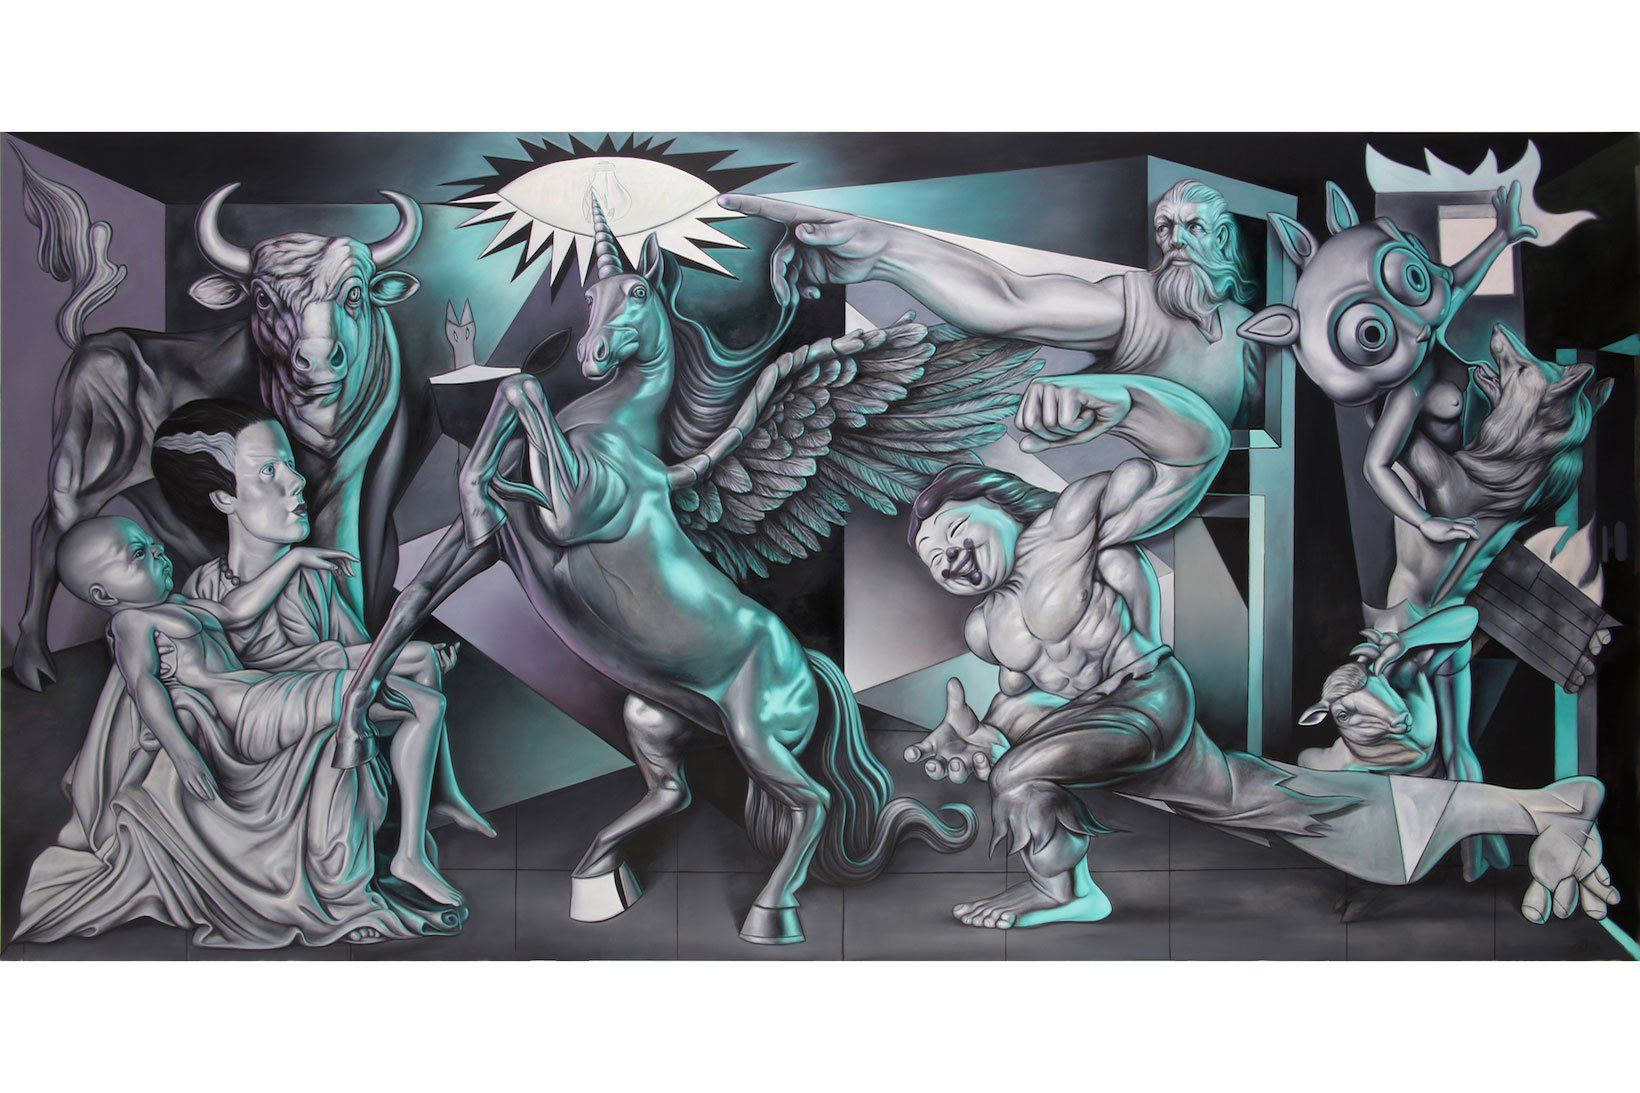 ron-english-guernica-allouche-gallery-6